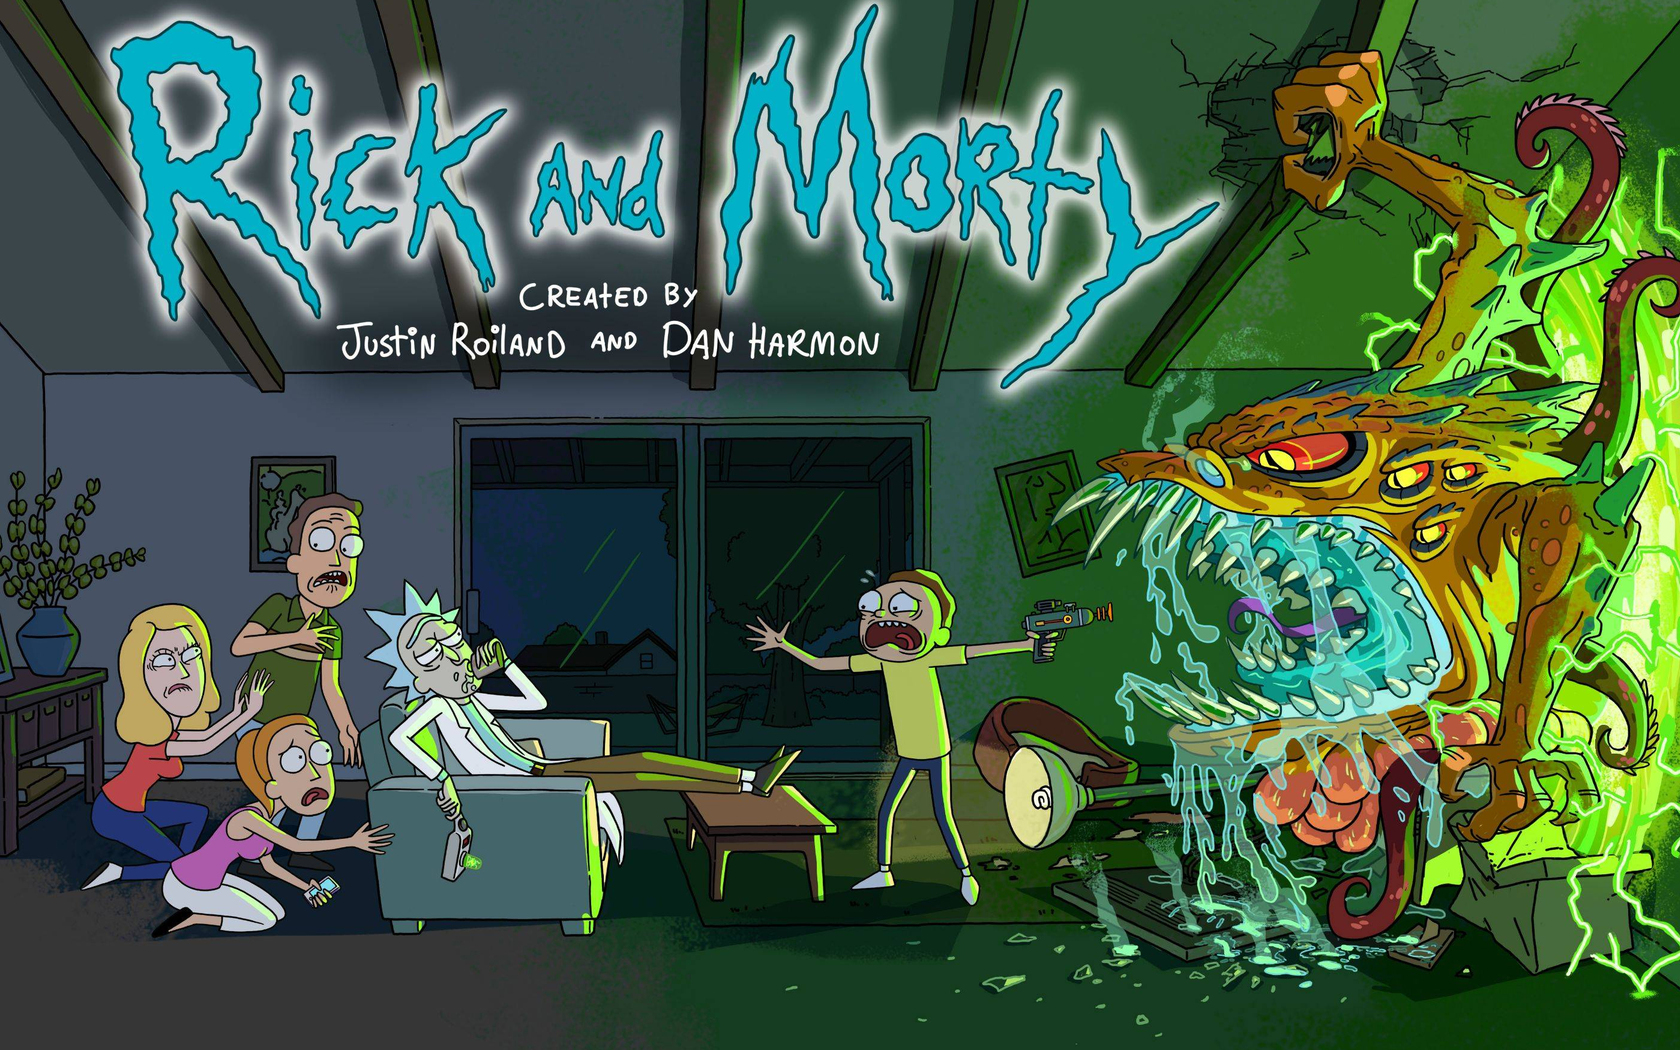 1680x1050 Rick And Morty 2017 1680x1050 Resolution HD 4k ...